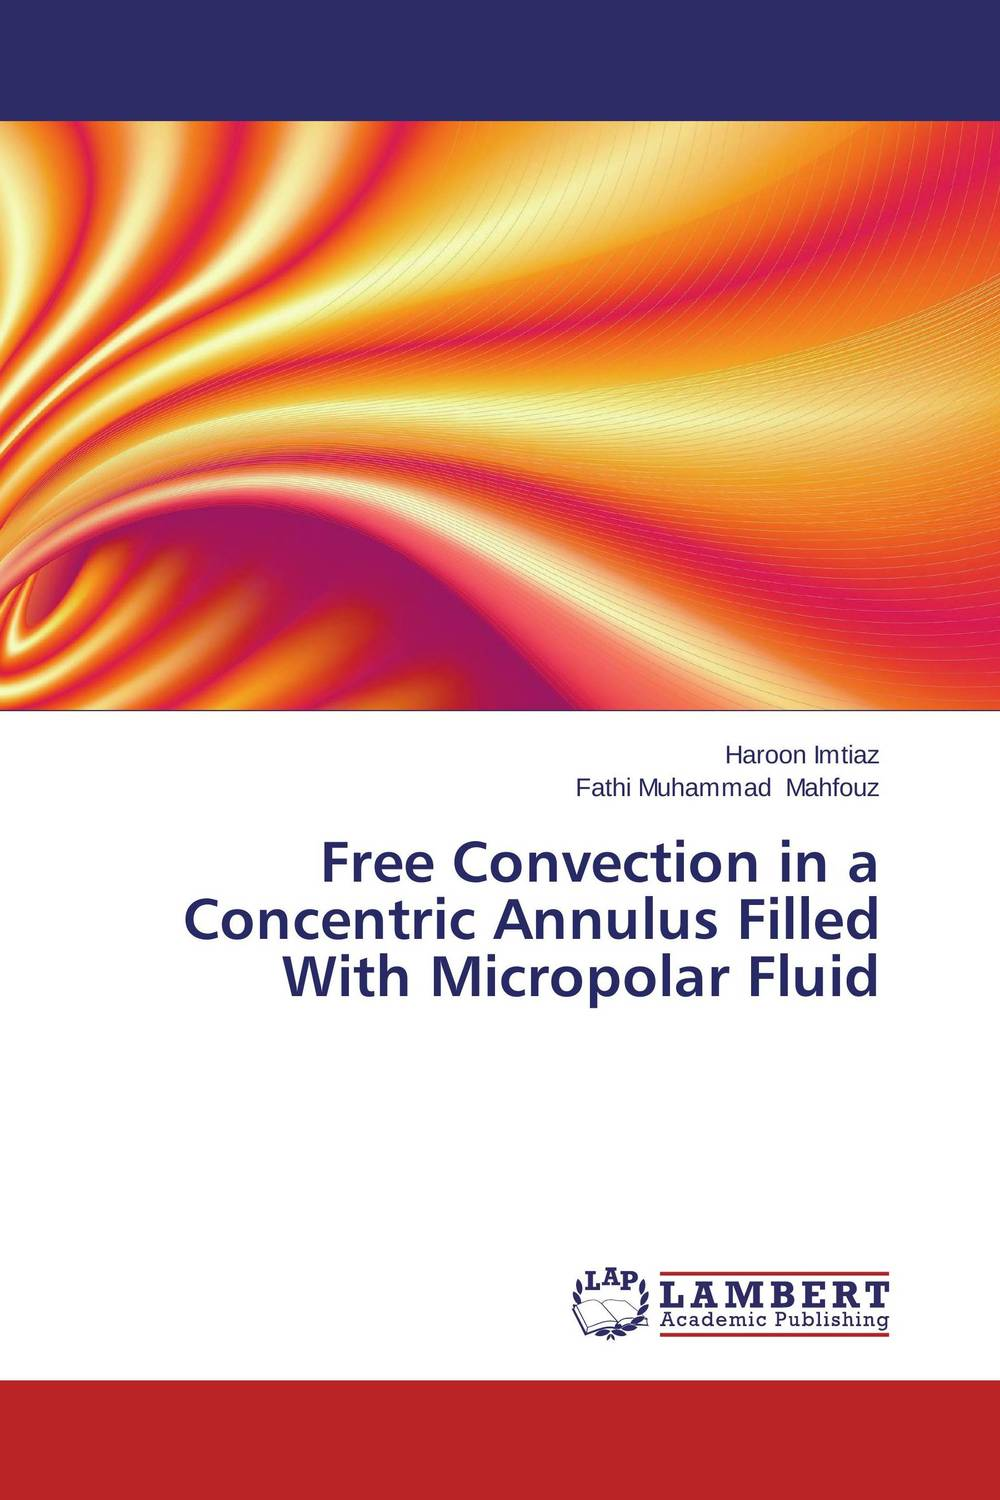 Free Convection in a Concentric Annulus Filled With Micropolar Fluid particle mixing and settling in reservoirs under natural convection